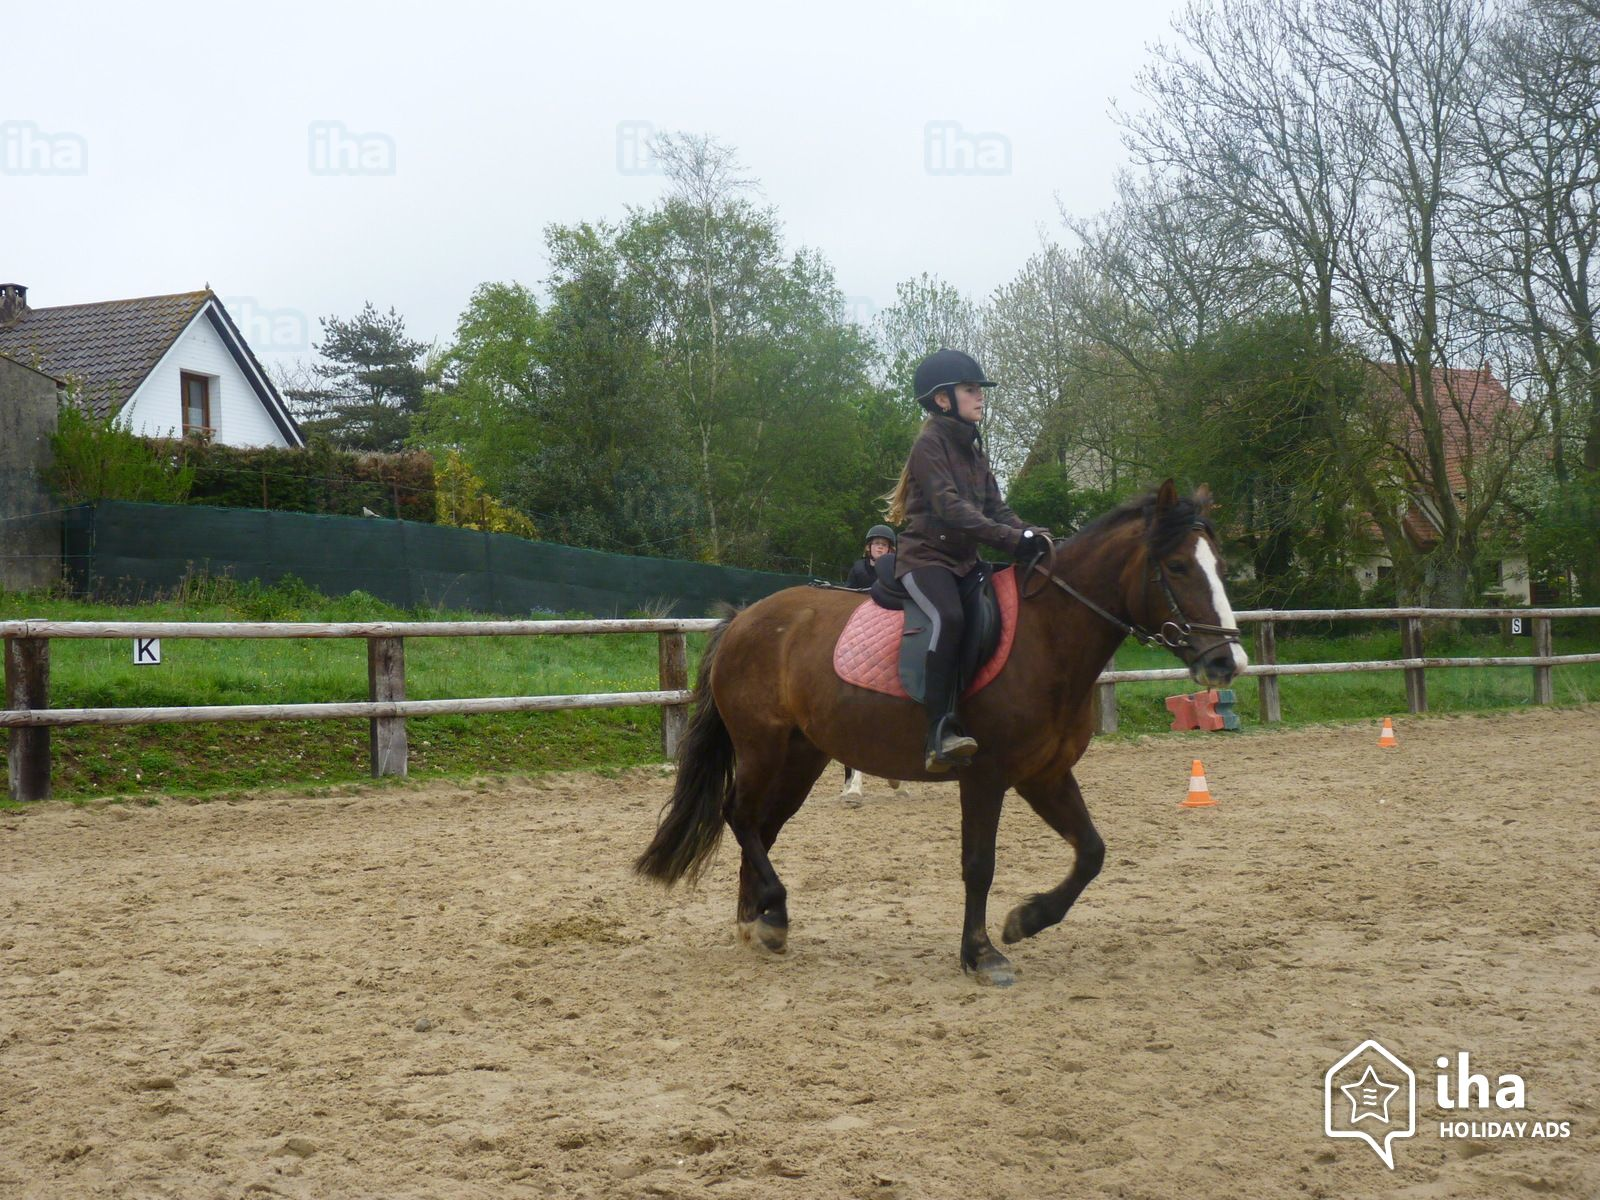 Horse riding eases back pain,boosts confidence